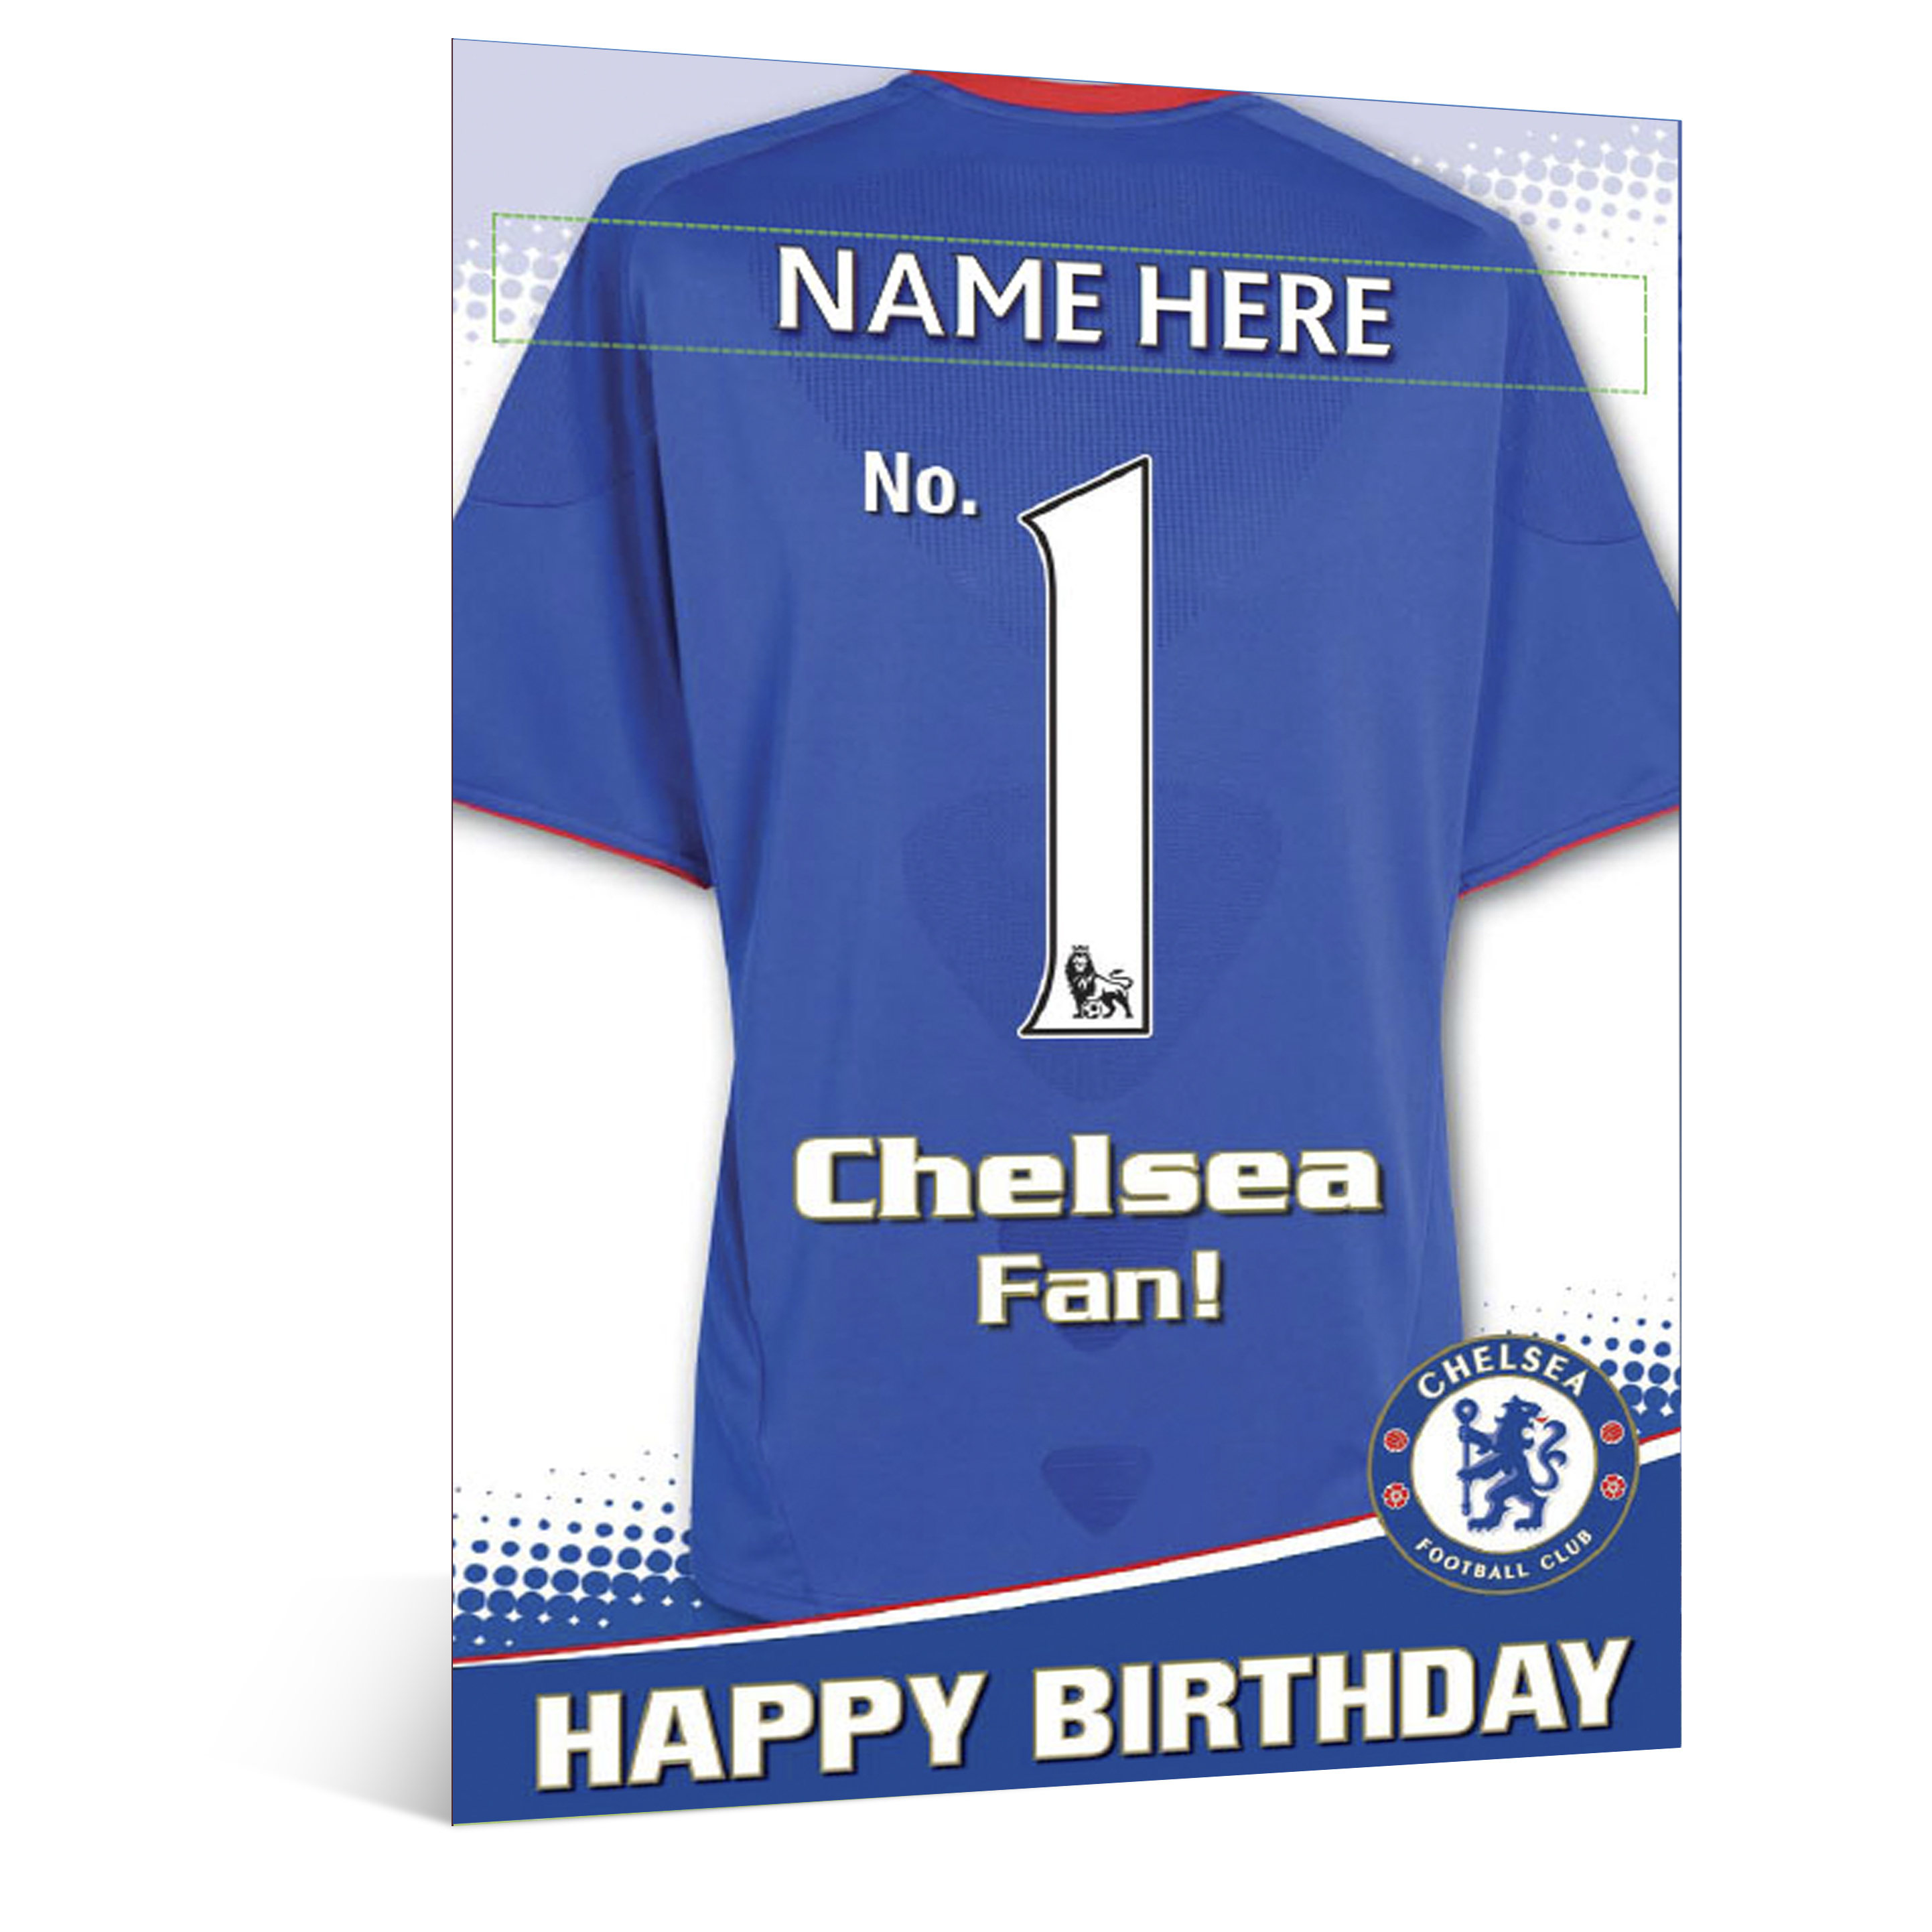 Chelsea Personalised Happy Birthday Card - No 1 Fan